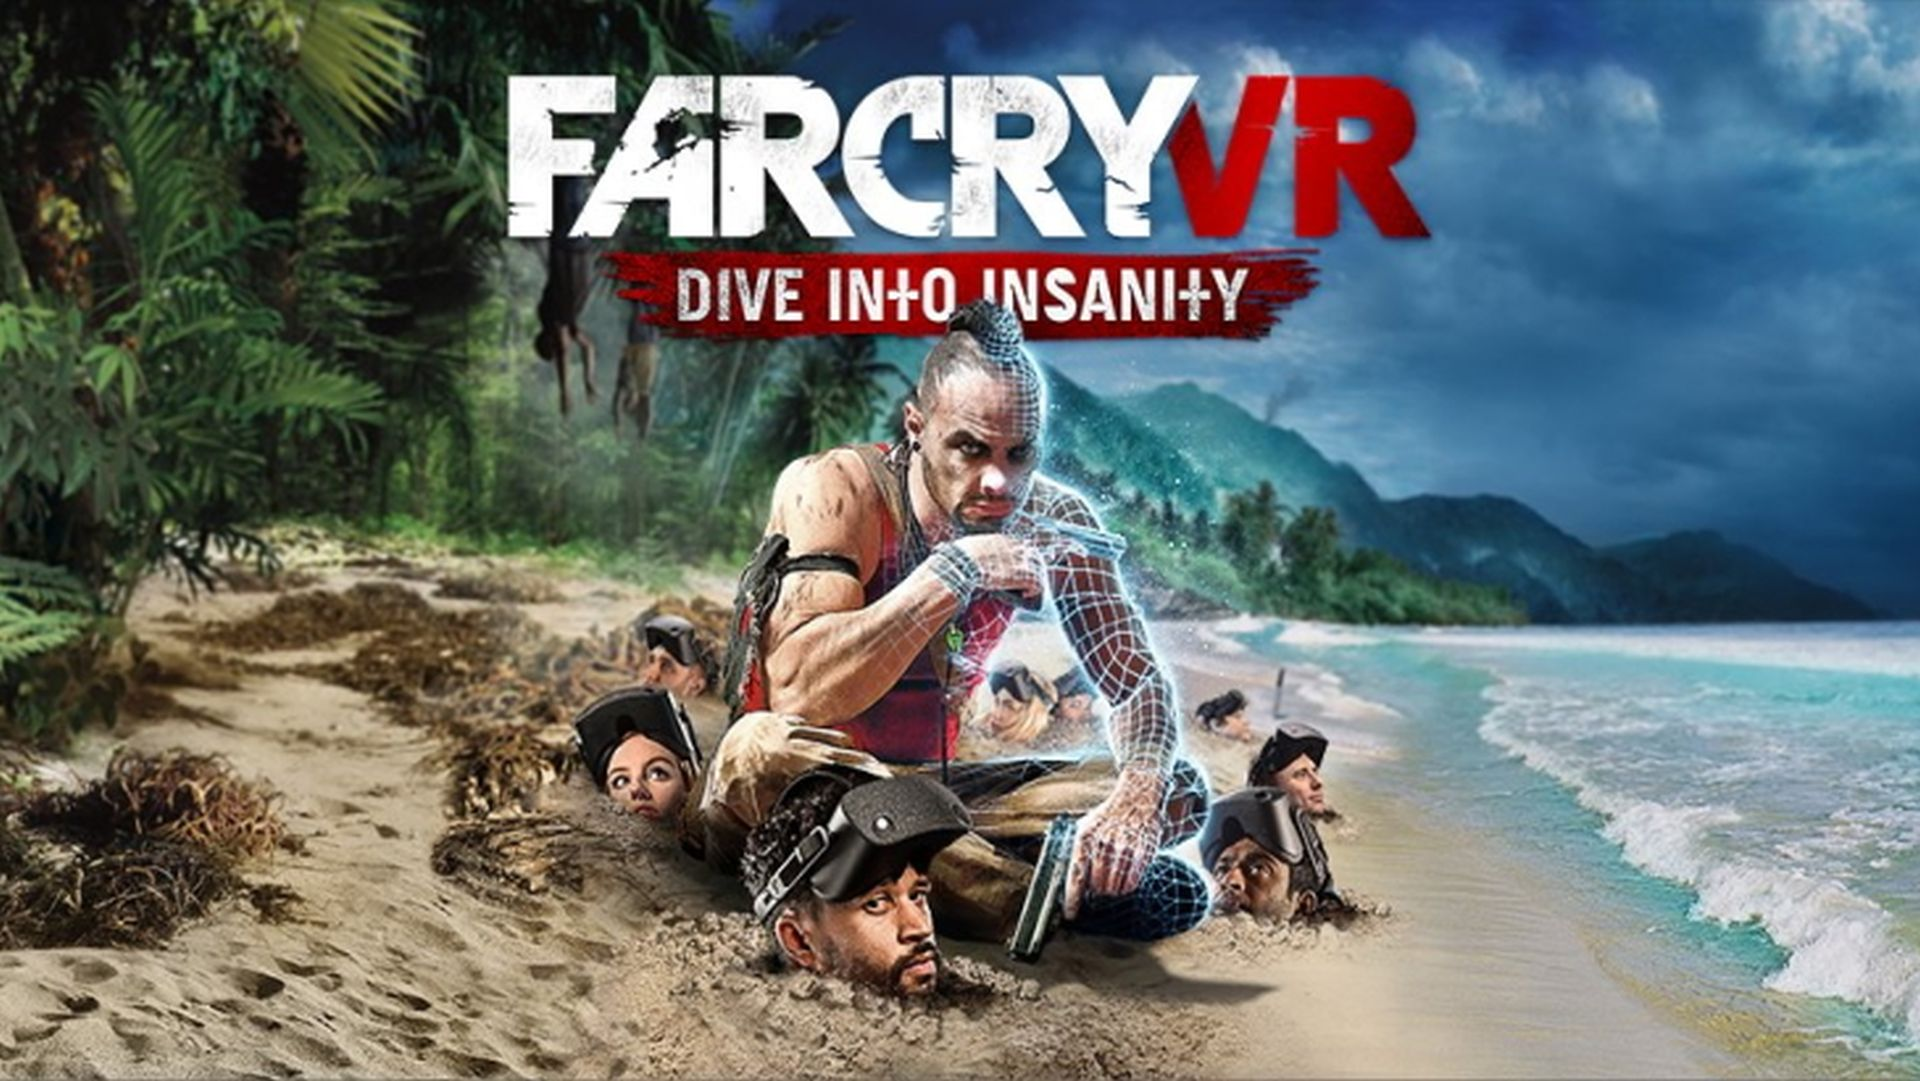 Far Cry VR Dive Into Insanity